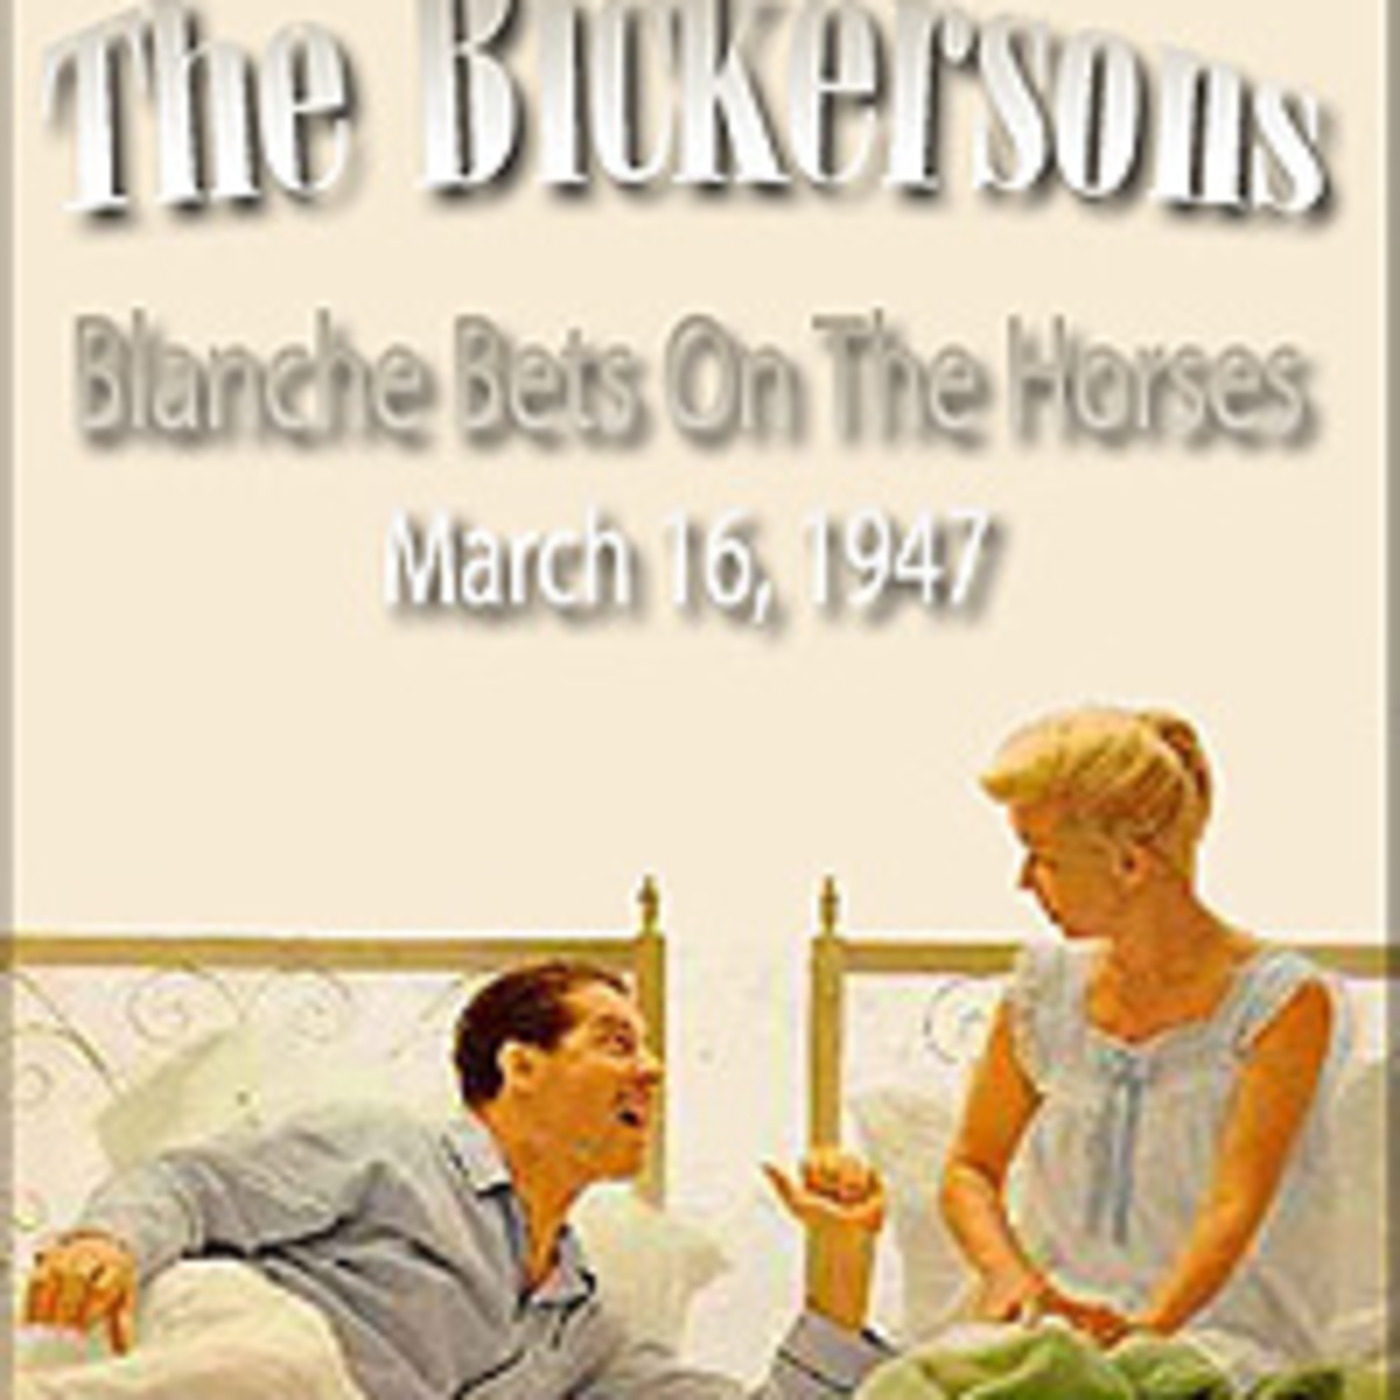 The Bickersons - Blanche Bets On The Horses (03-16-47)